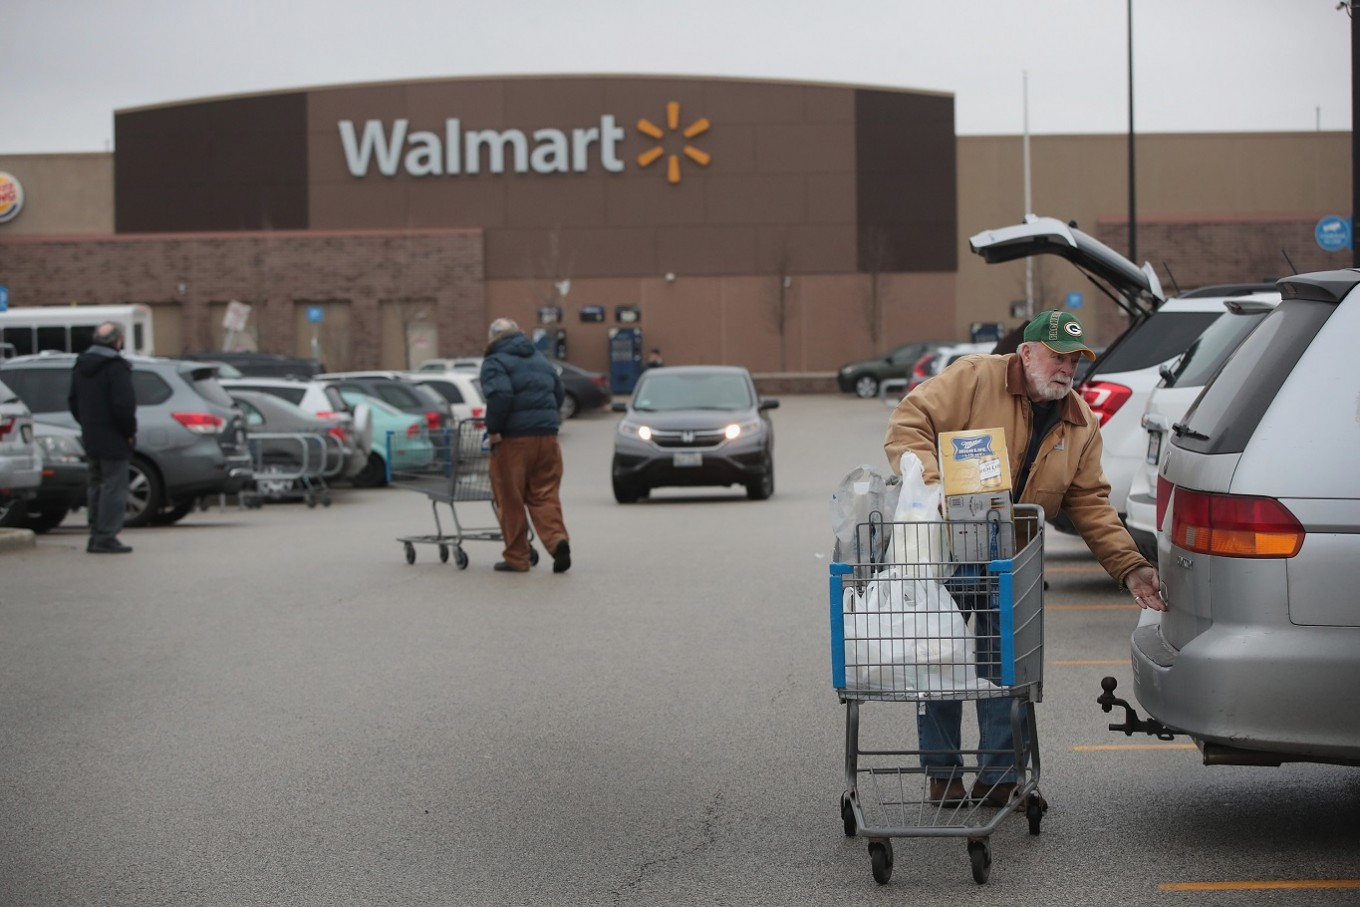 wal mart e business A new lawsuit from a former walmart business development the suit comes as walmart has pumped billions of dollars into its e-commerce business over the.